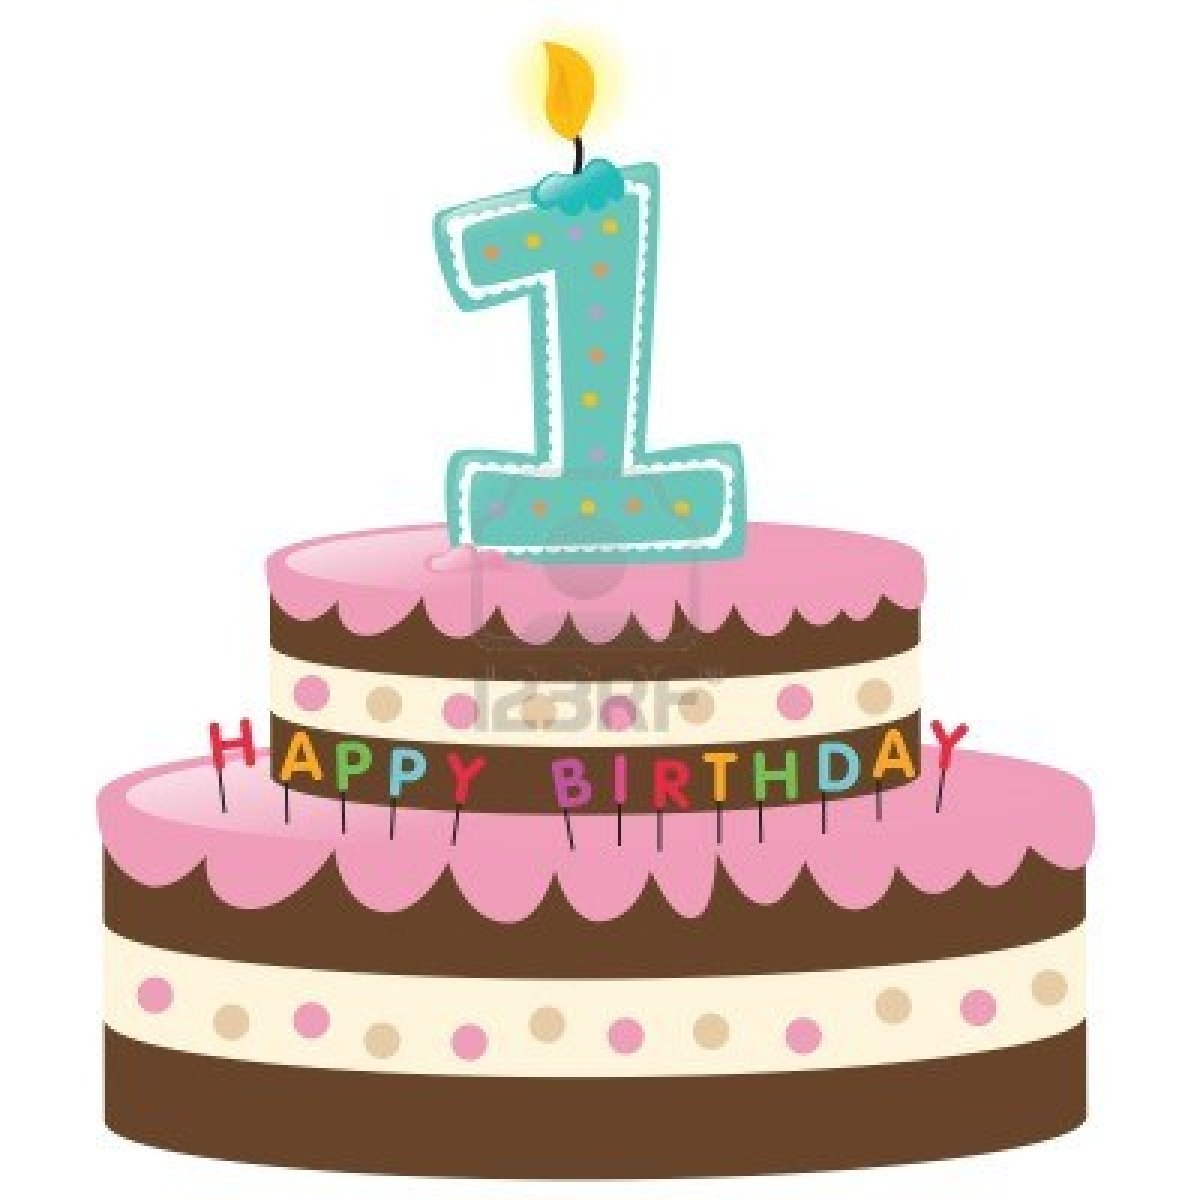 1st birthday cake clipart.  st cakes clipartfest